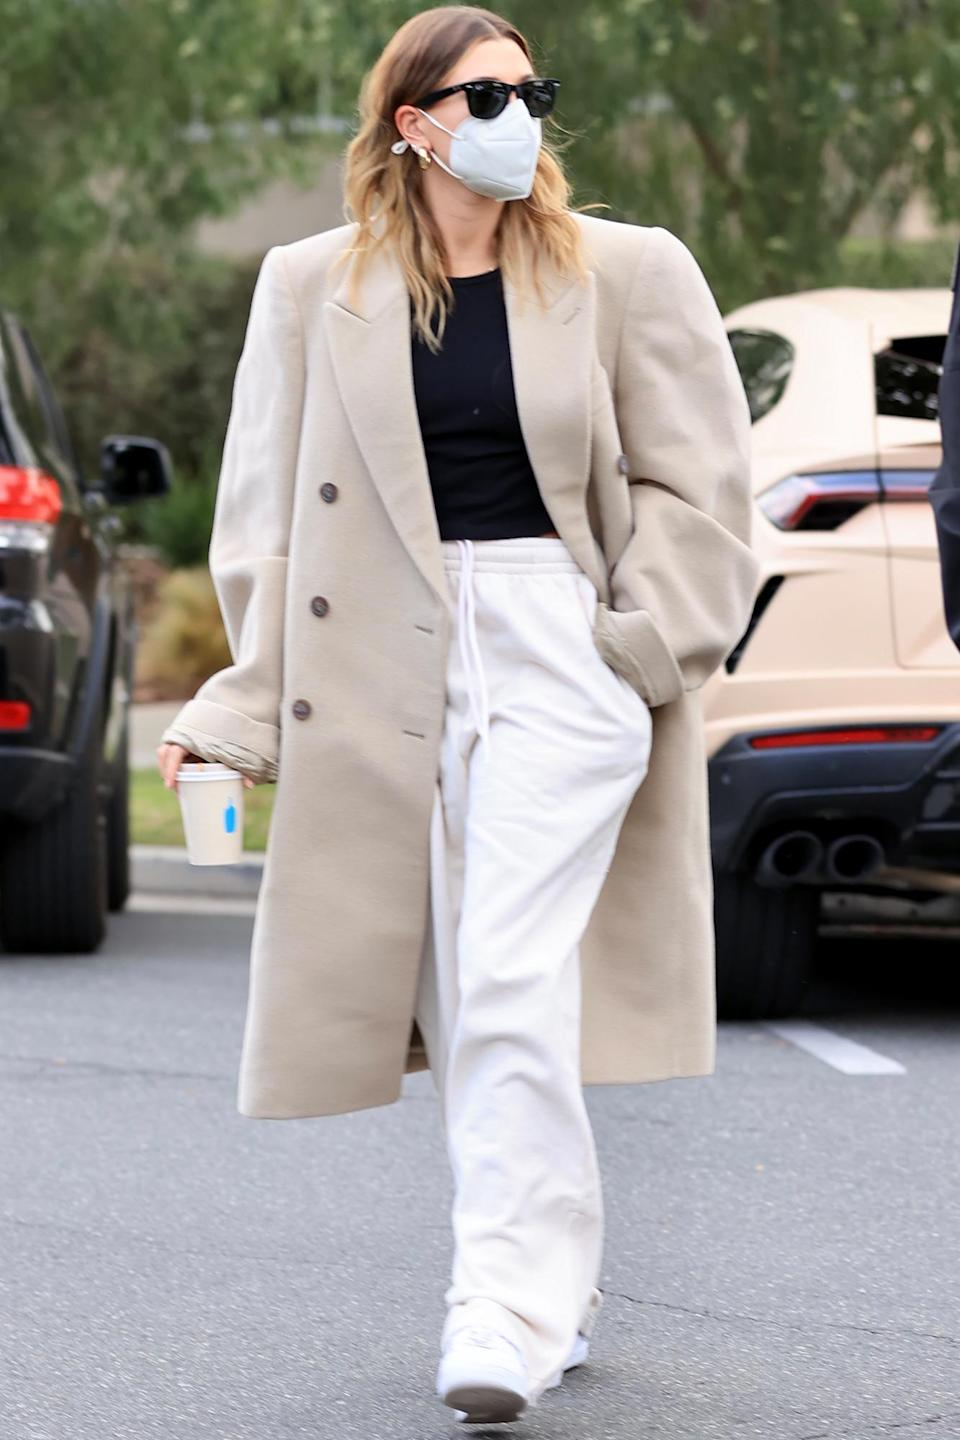 <p>Hailey Baldwin bundled up in monochrome separates during an outing in Los Angeles.</p>